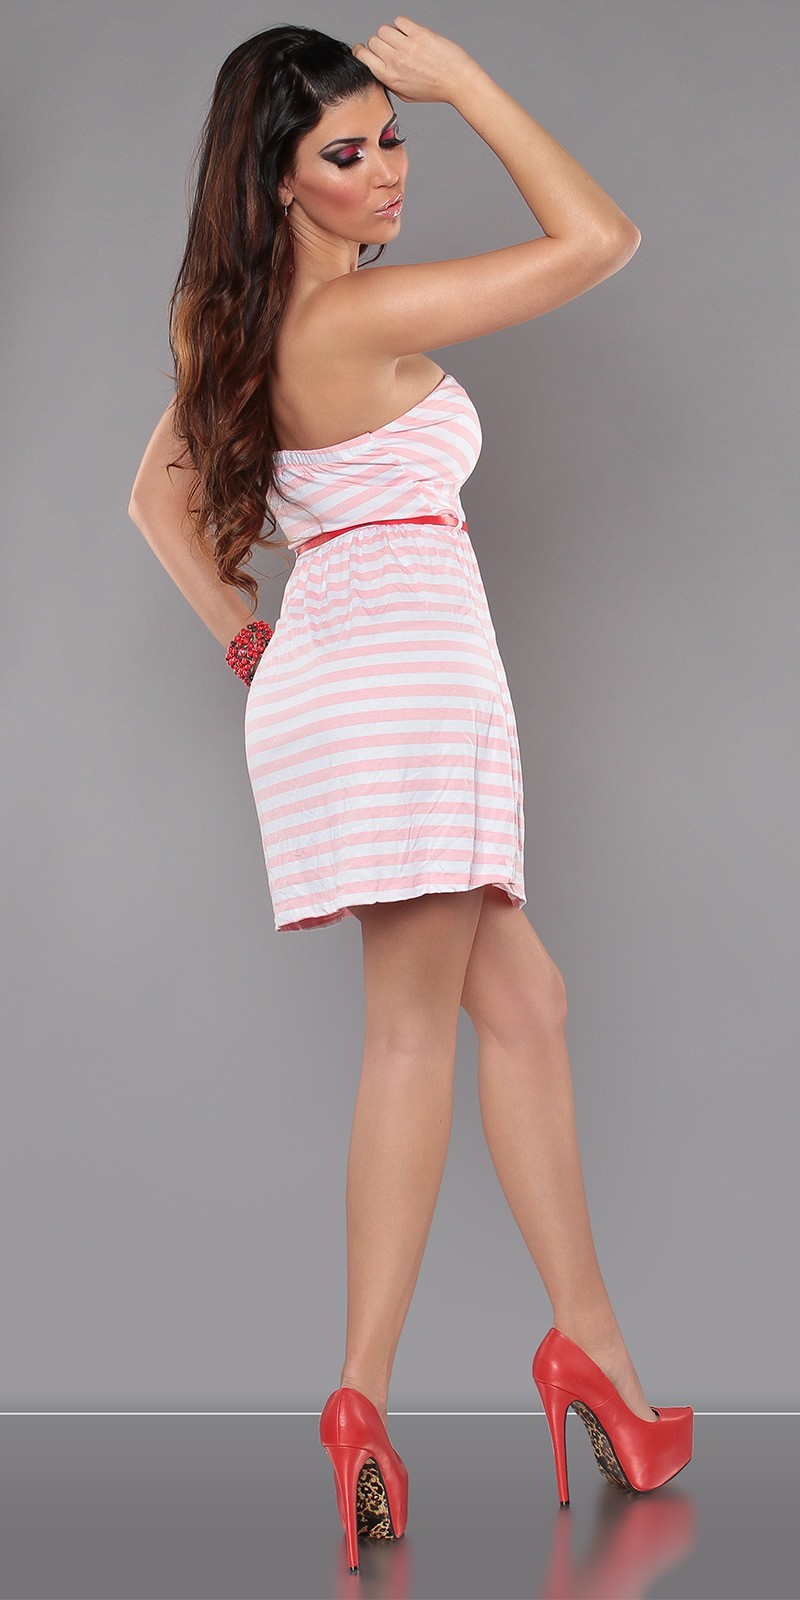 Pink Strapless Striped Dress With Red Belt